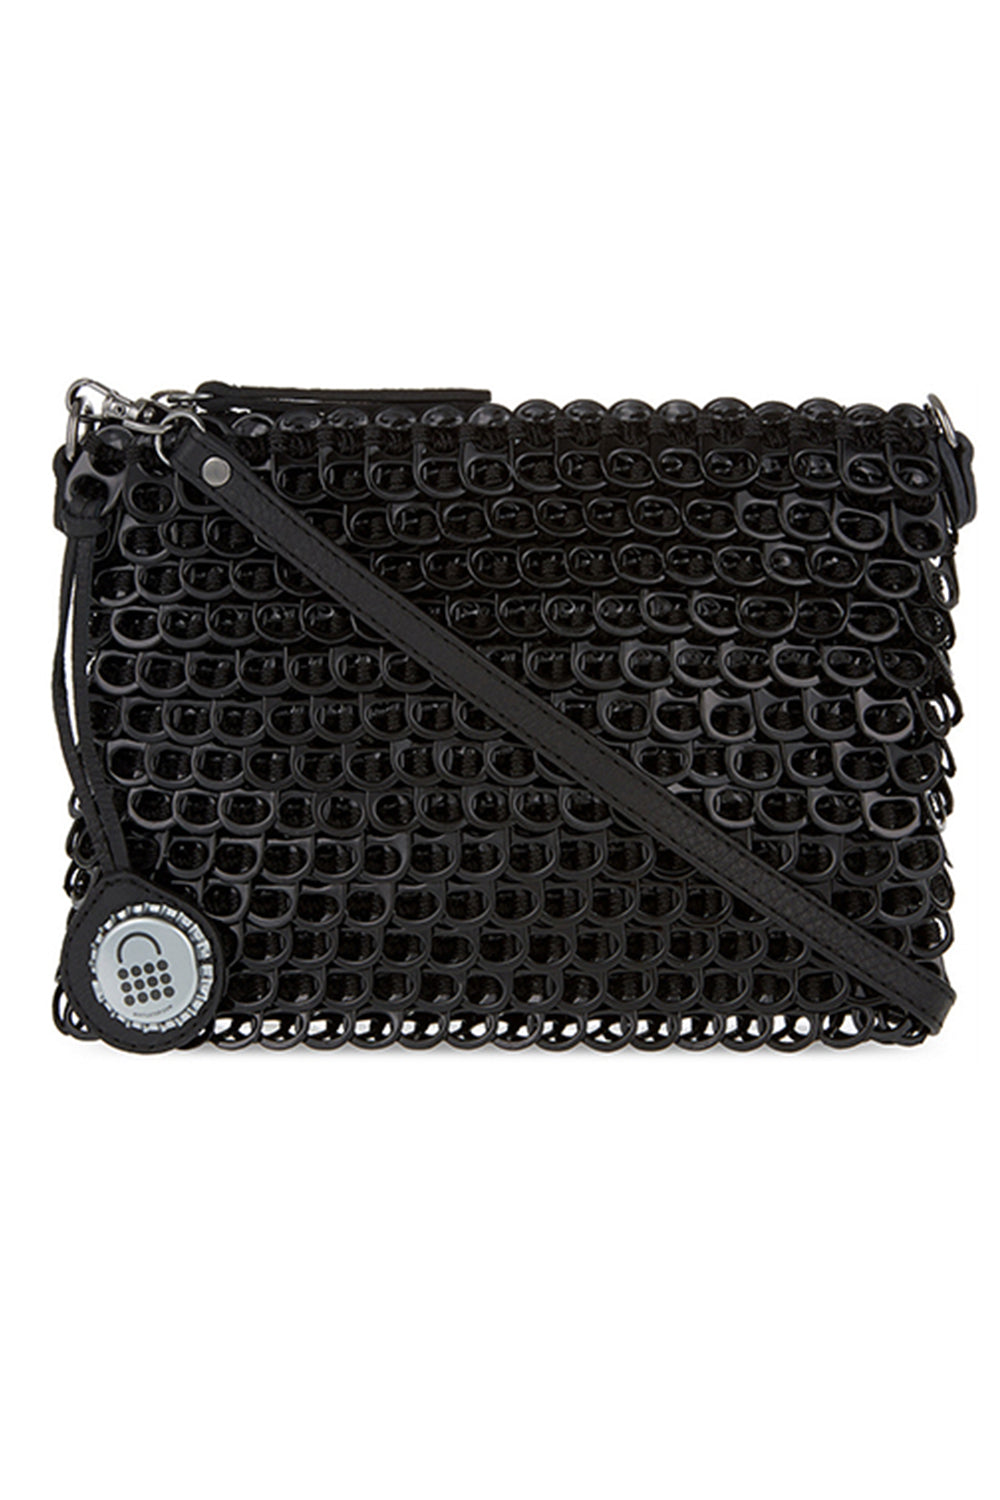 Luciana Enamel Purse in Black